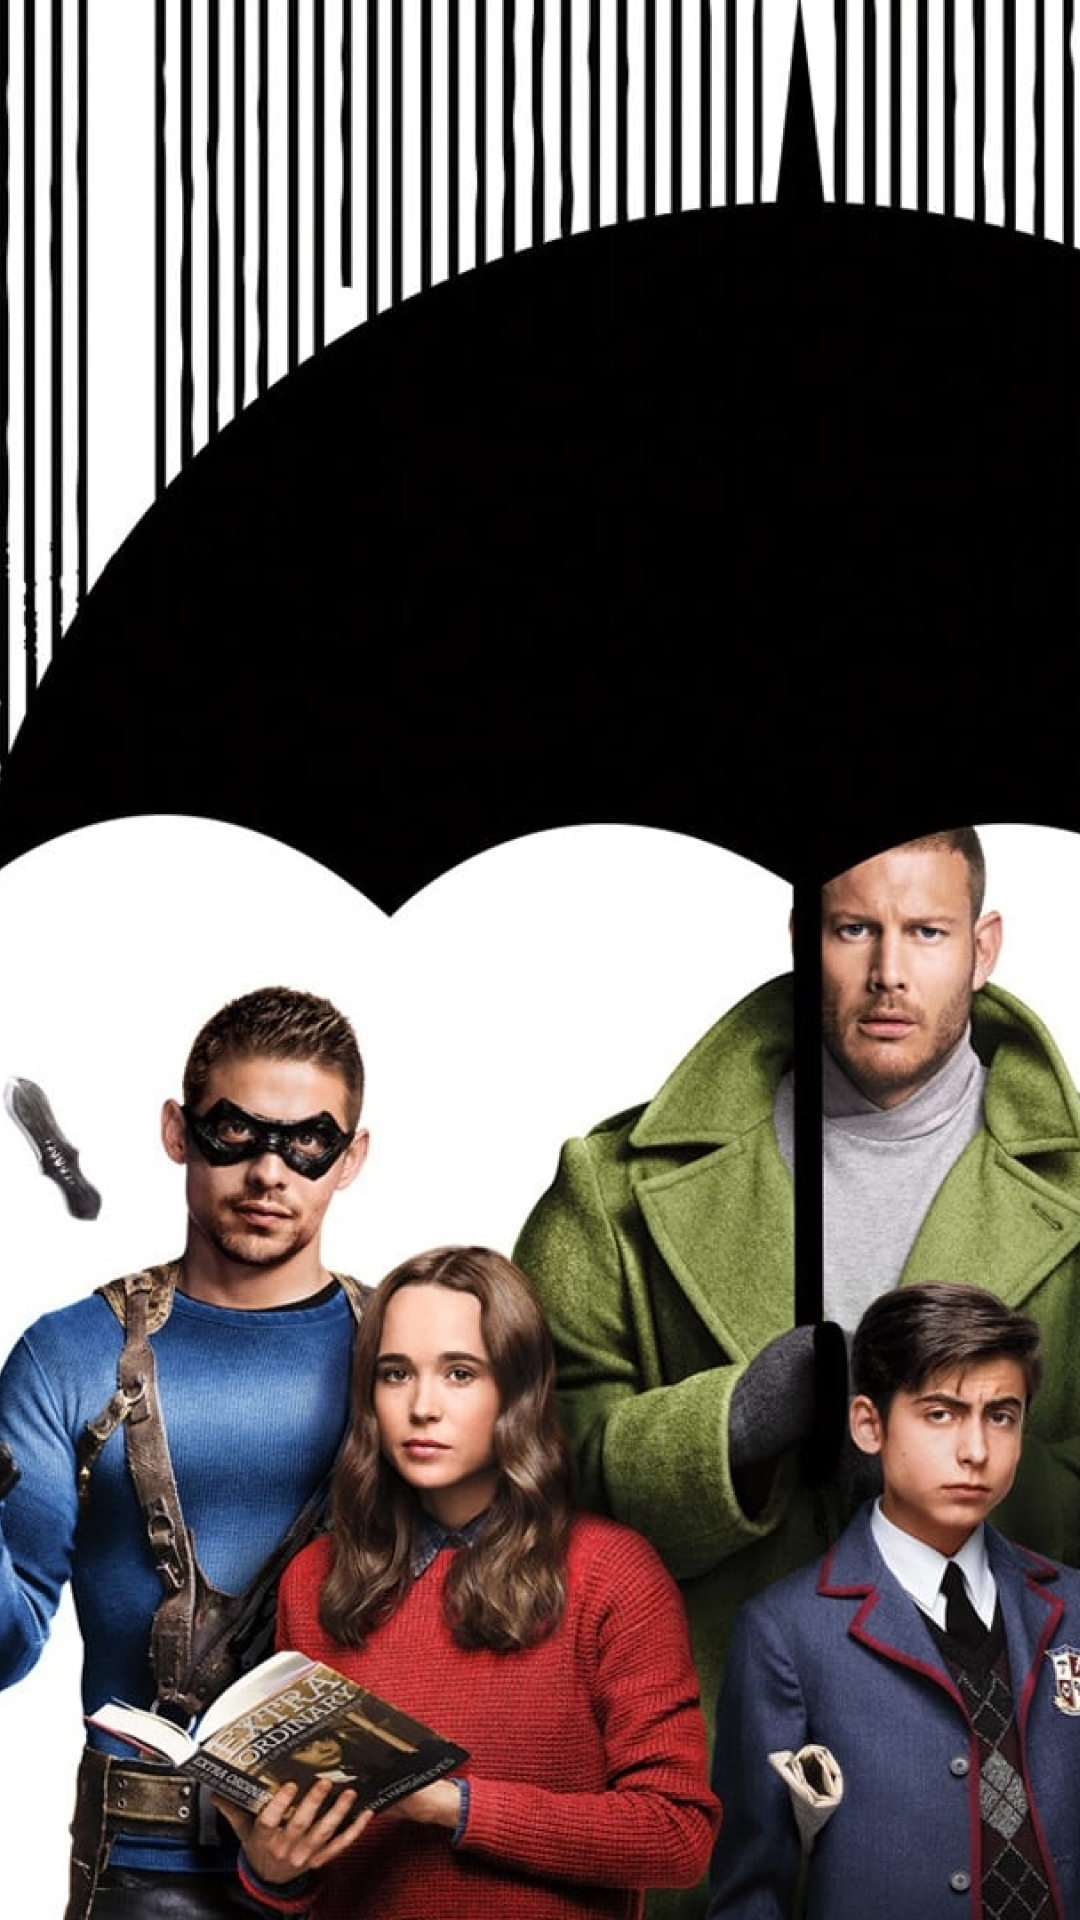 1080x1920 The Umbrella Academy 2019 Iphone 7 6s 6 Plus And Pixel Xl One Plus 3 3t 5 Wallpaper Hd Tv Series 4k Wallpapers Images Photos And Background